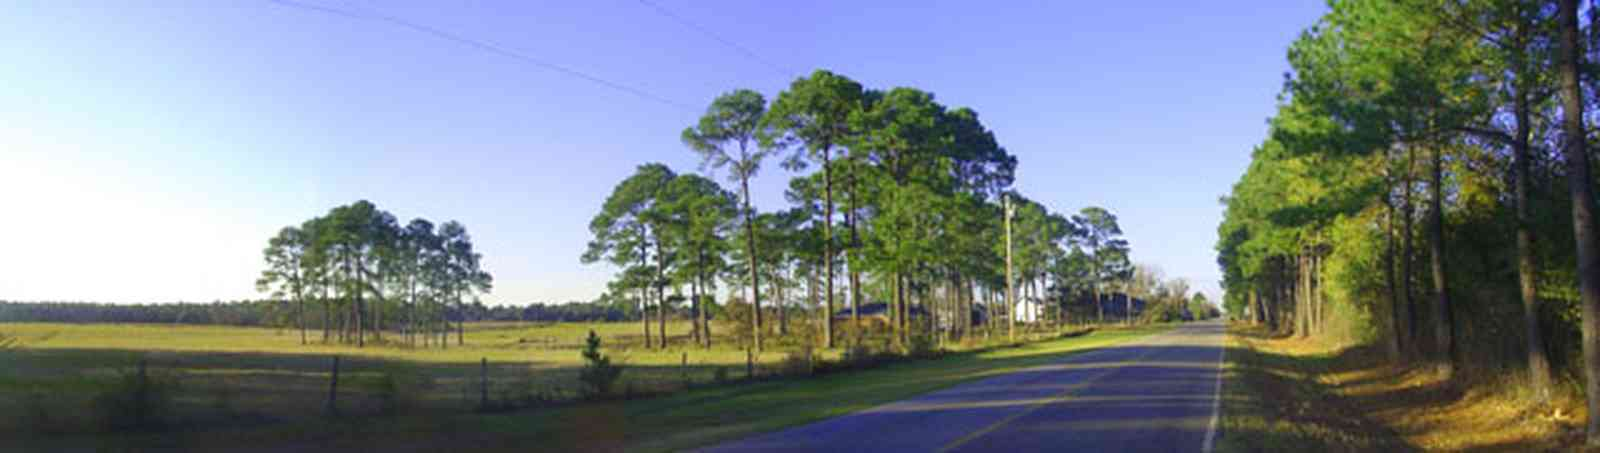 Elberta:-Kleinschmidt-Road-Truck-Farm_04.jpg:  country road, long-leaf pine trees, pasture land, highway, alabama, cattle, grazing